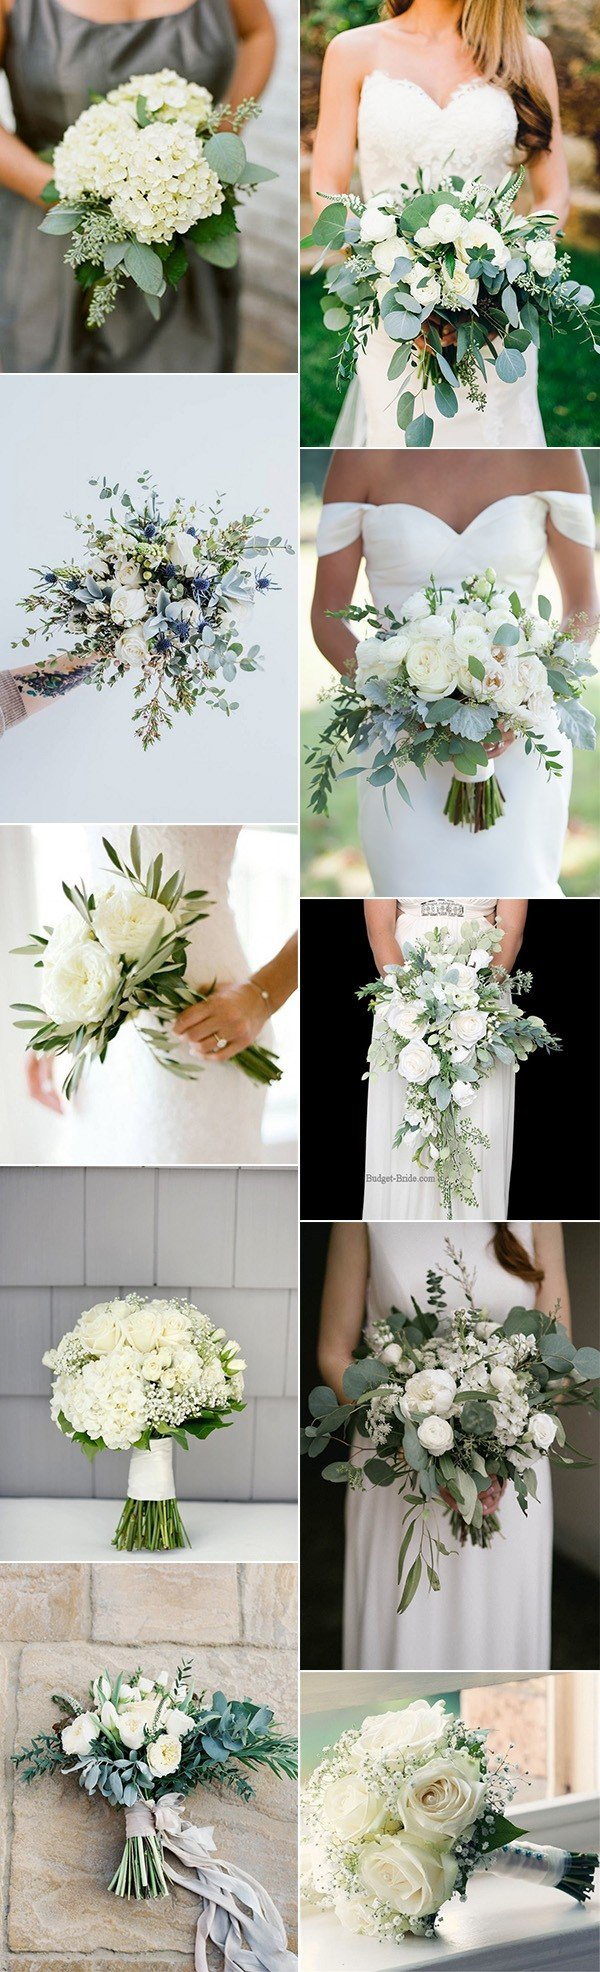 Top 10 White And Green Wedding Bouquet Ideas You Ll Love